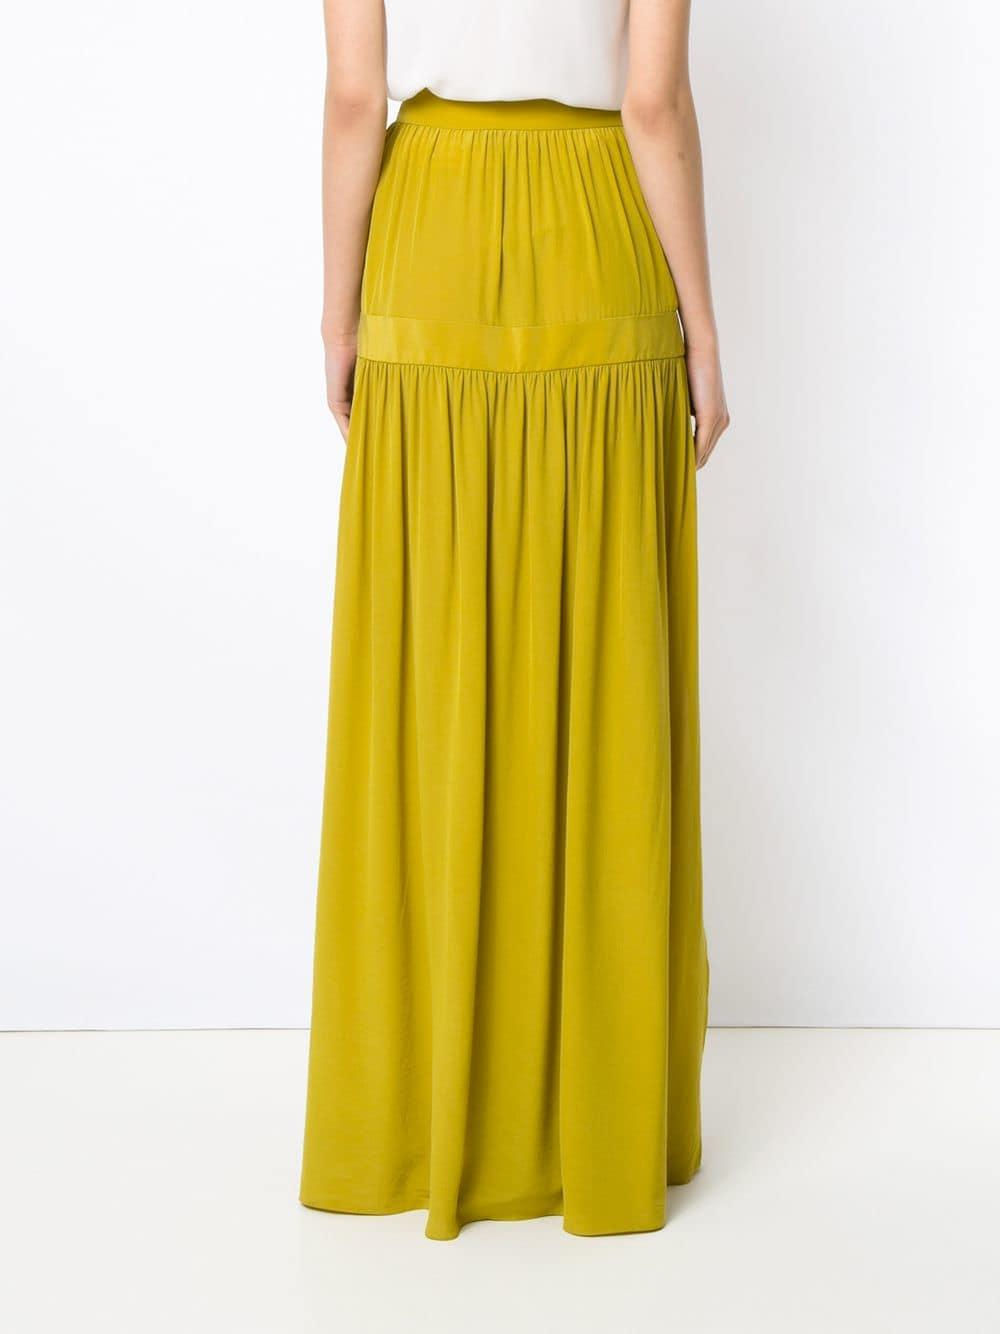 da4a825f52 Adriana Degreas - Yellow Silk Maxi Skirt - Lyst. View fullscreen